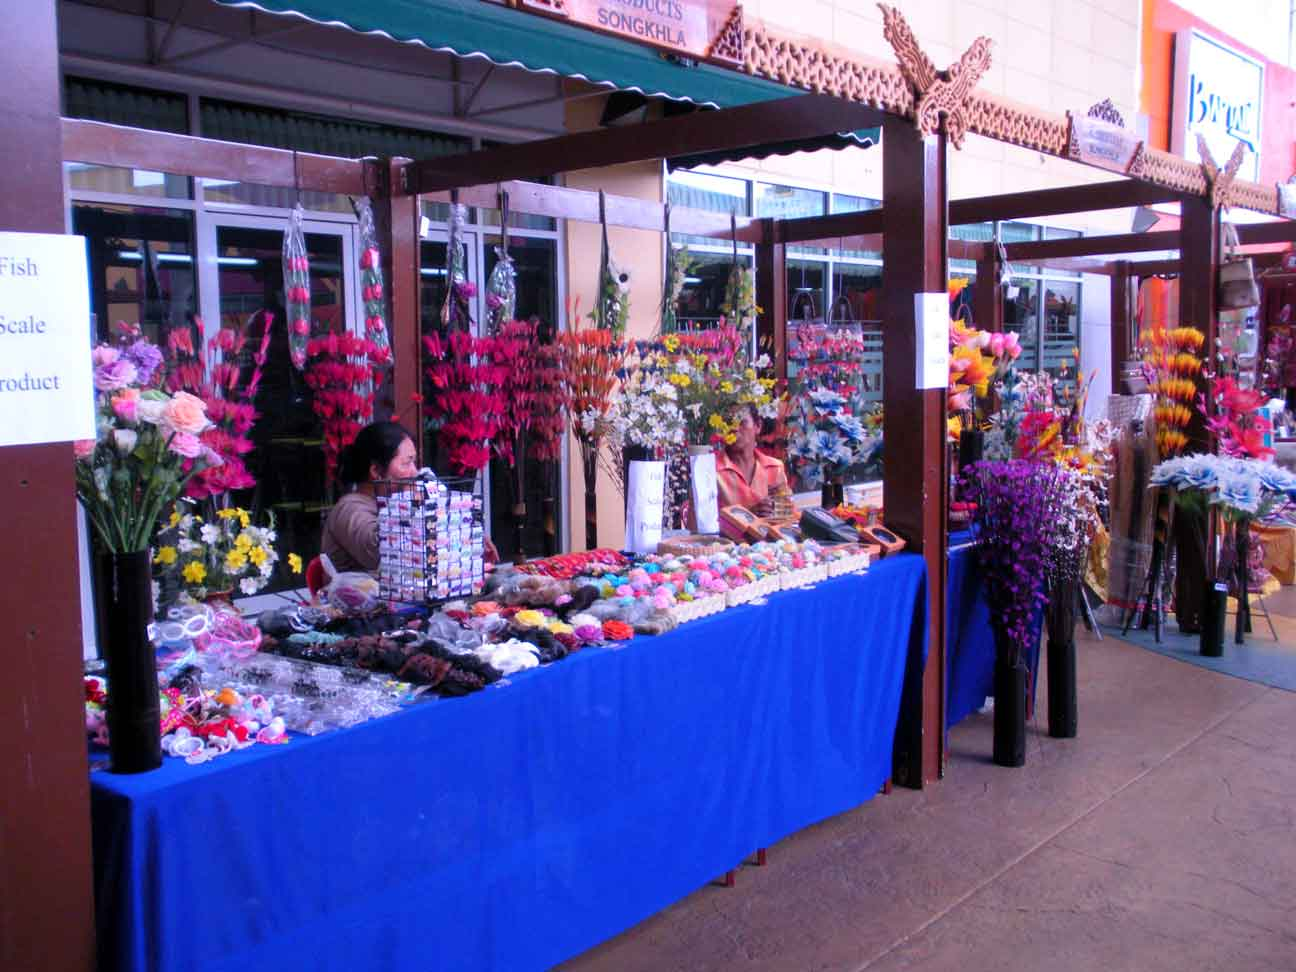 Thai Fair - decorative items